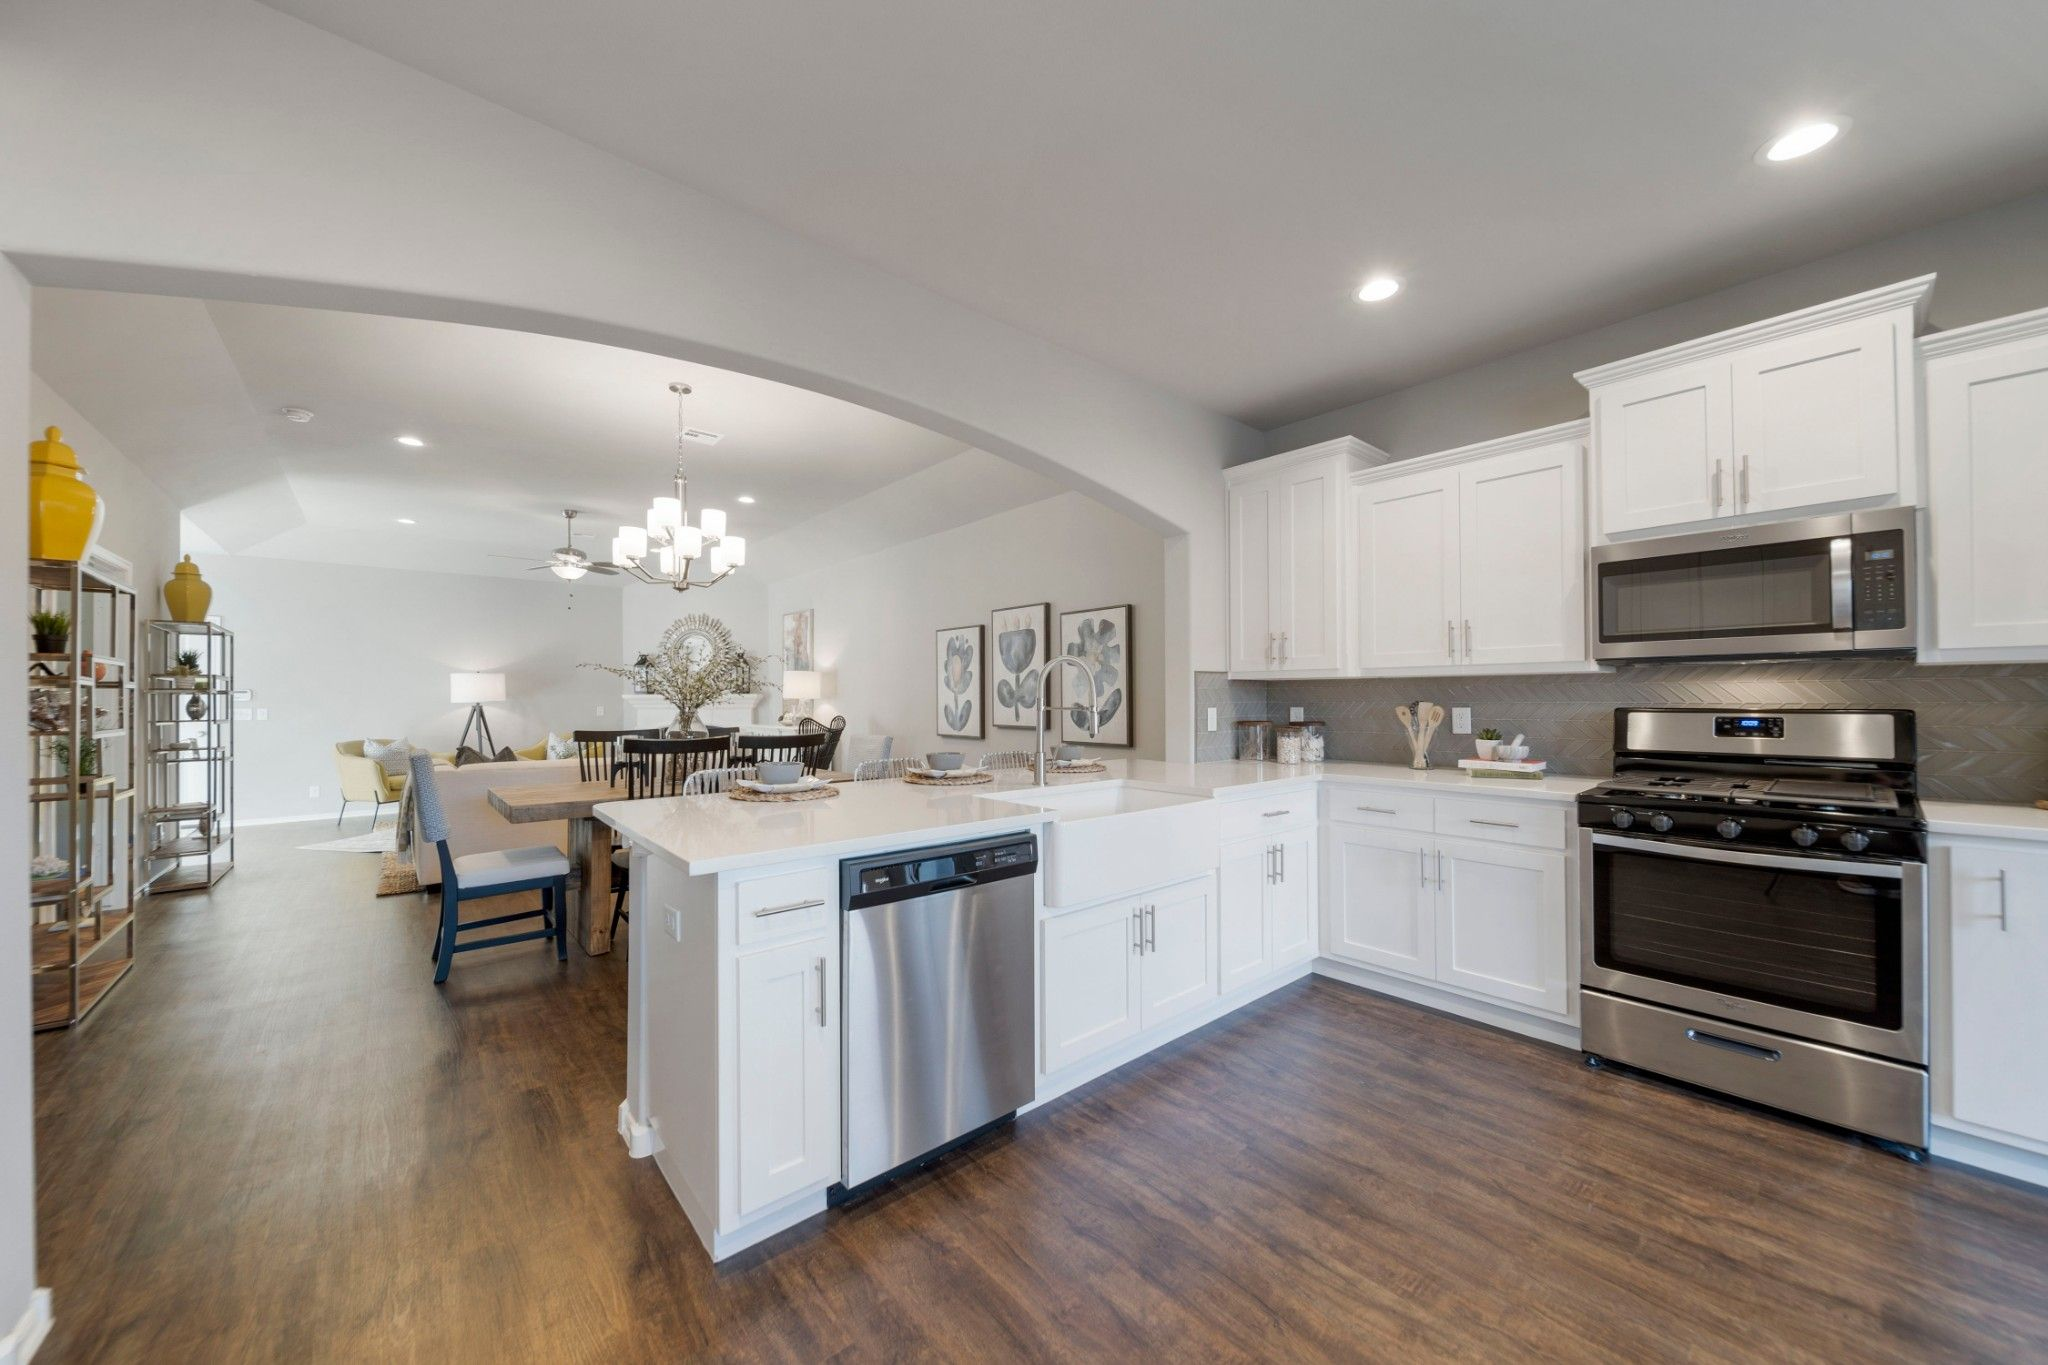 Kitchen featured in the Evergreen By Capital Homes in Tulsa, OK